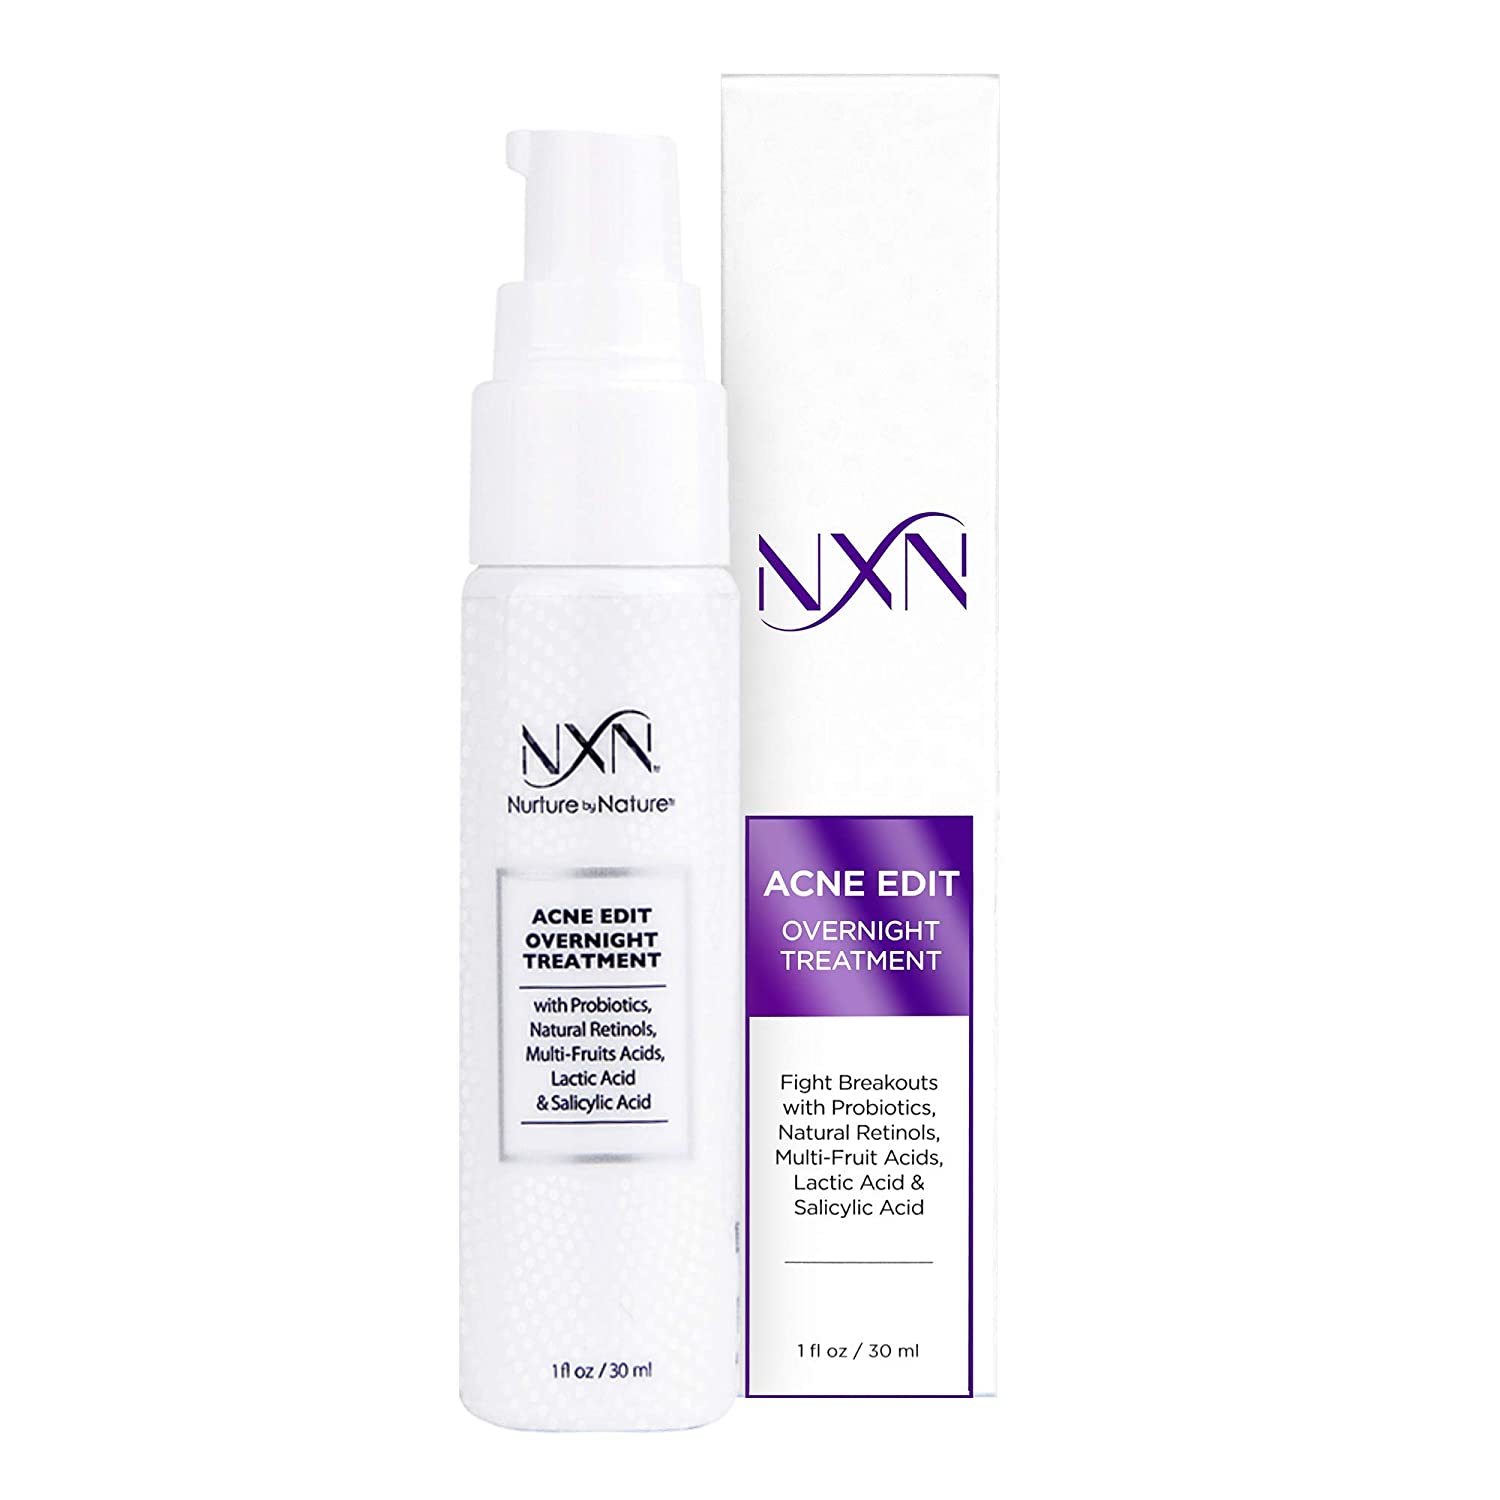 ACNE EDIT OVERNIGHT TREATMENT